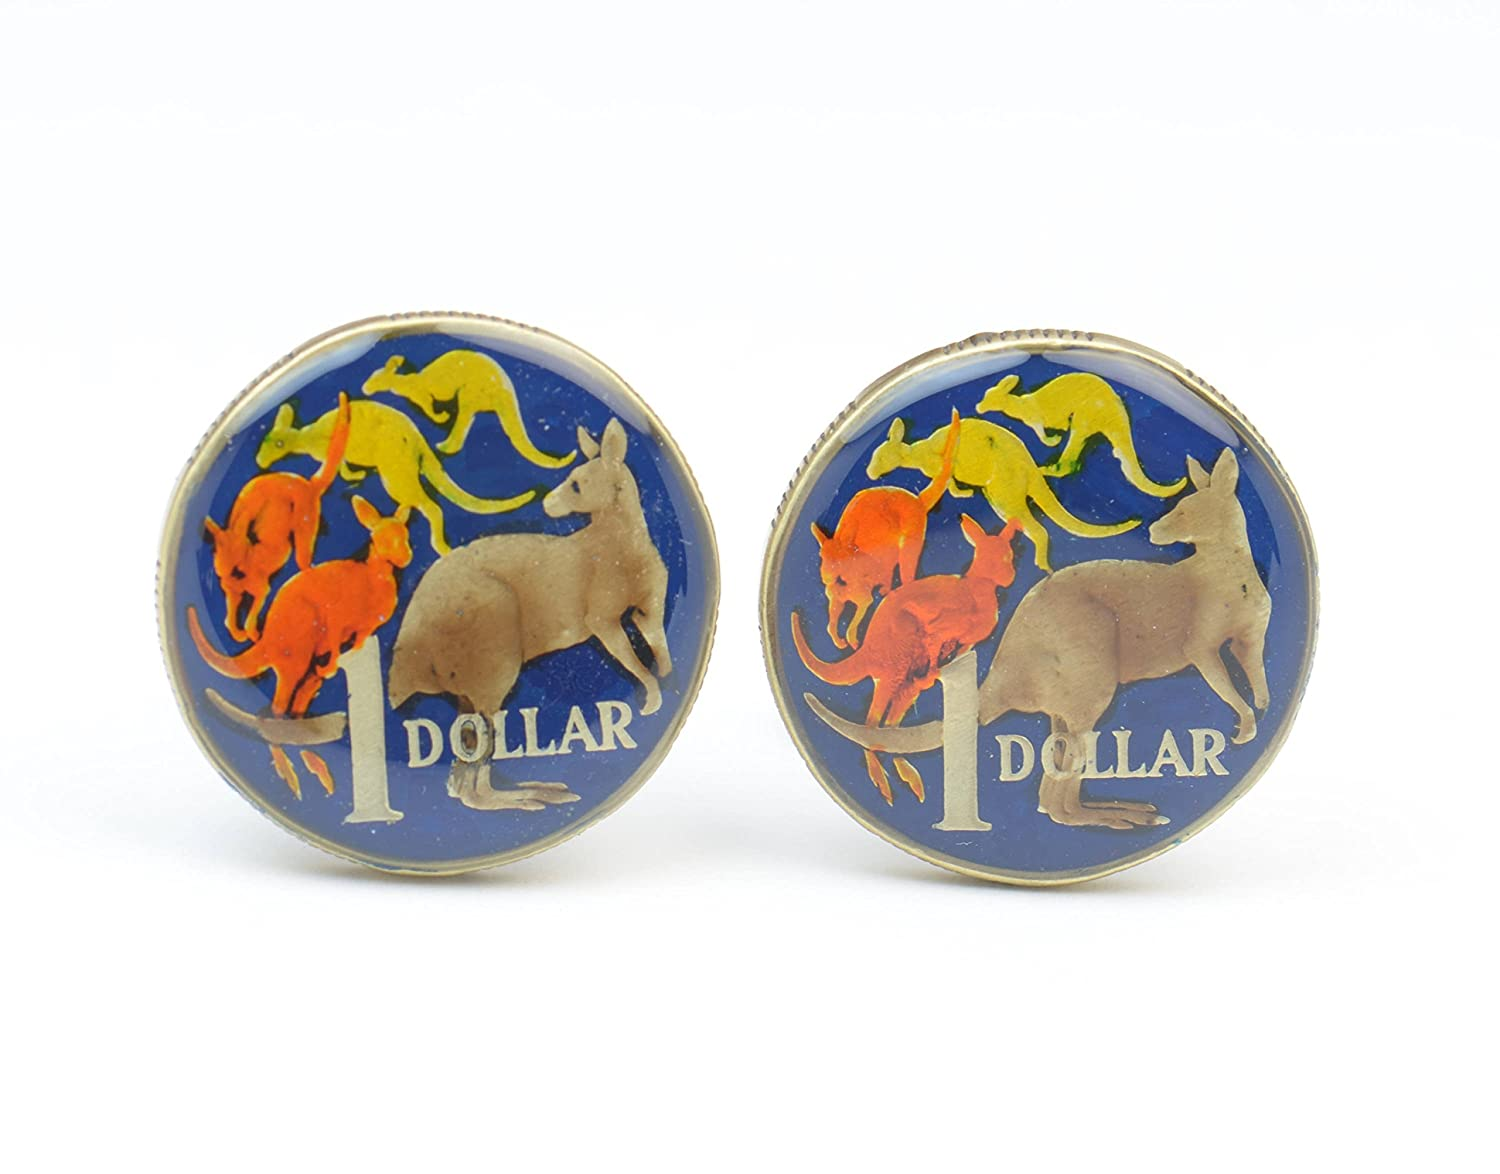 Seattle Mall Cufflinks hand painted enamel coin. di Cuff Australia.Coin Attention brand links